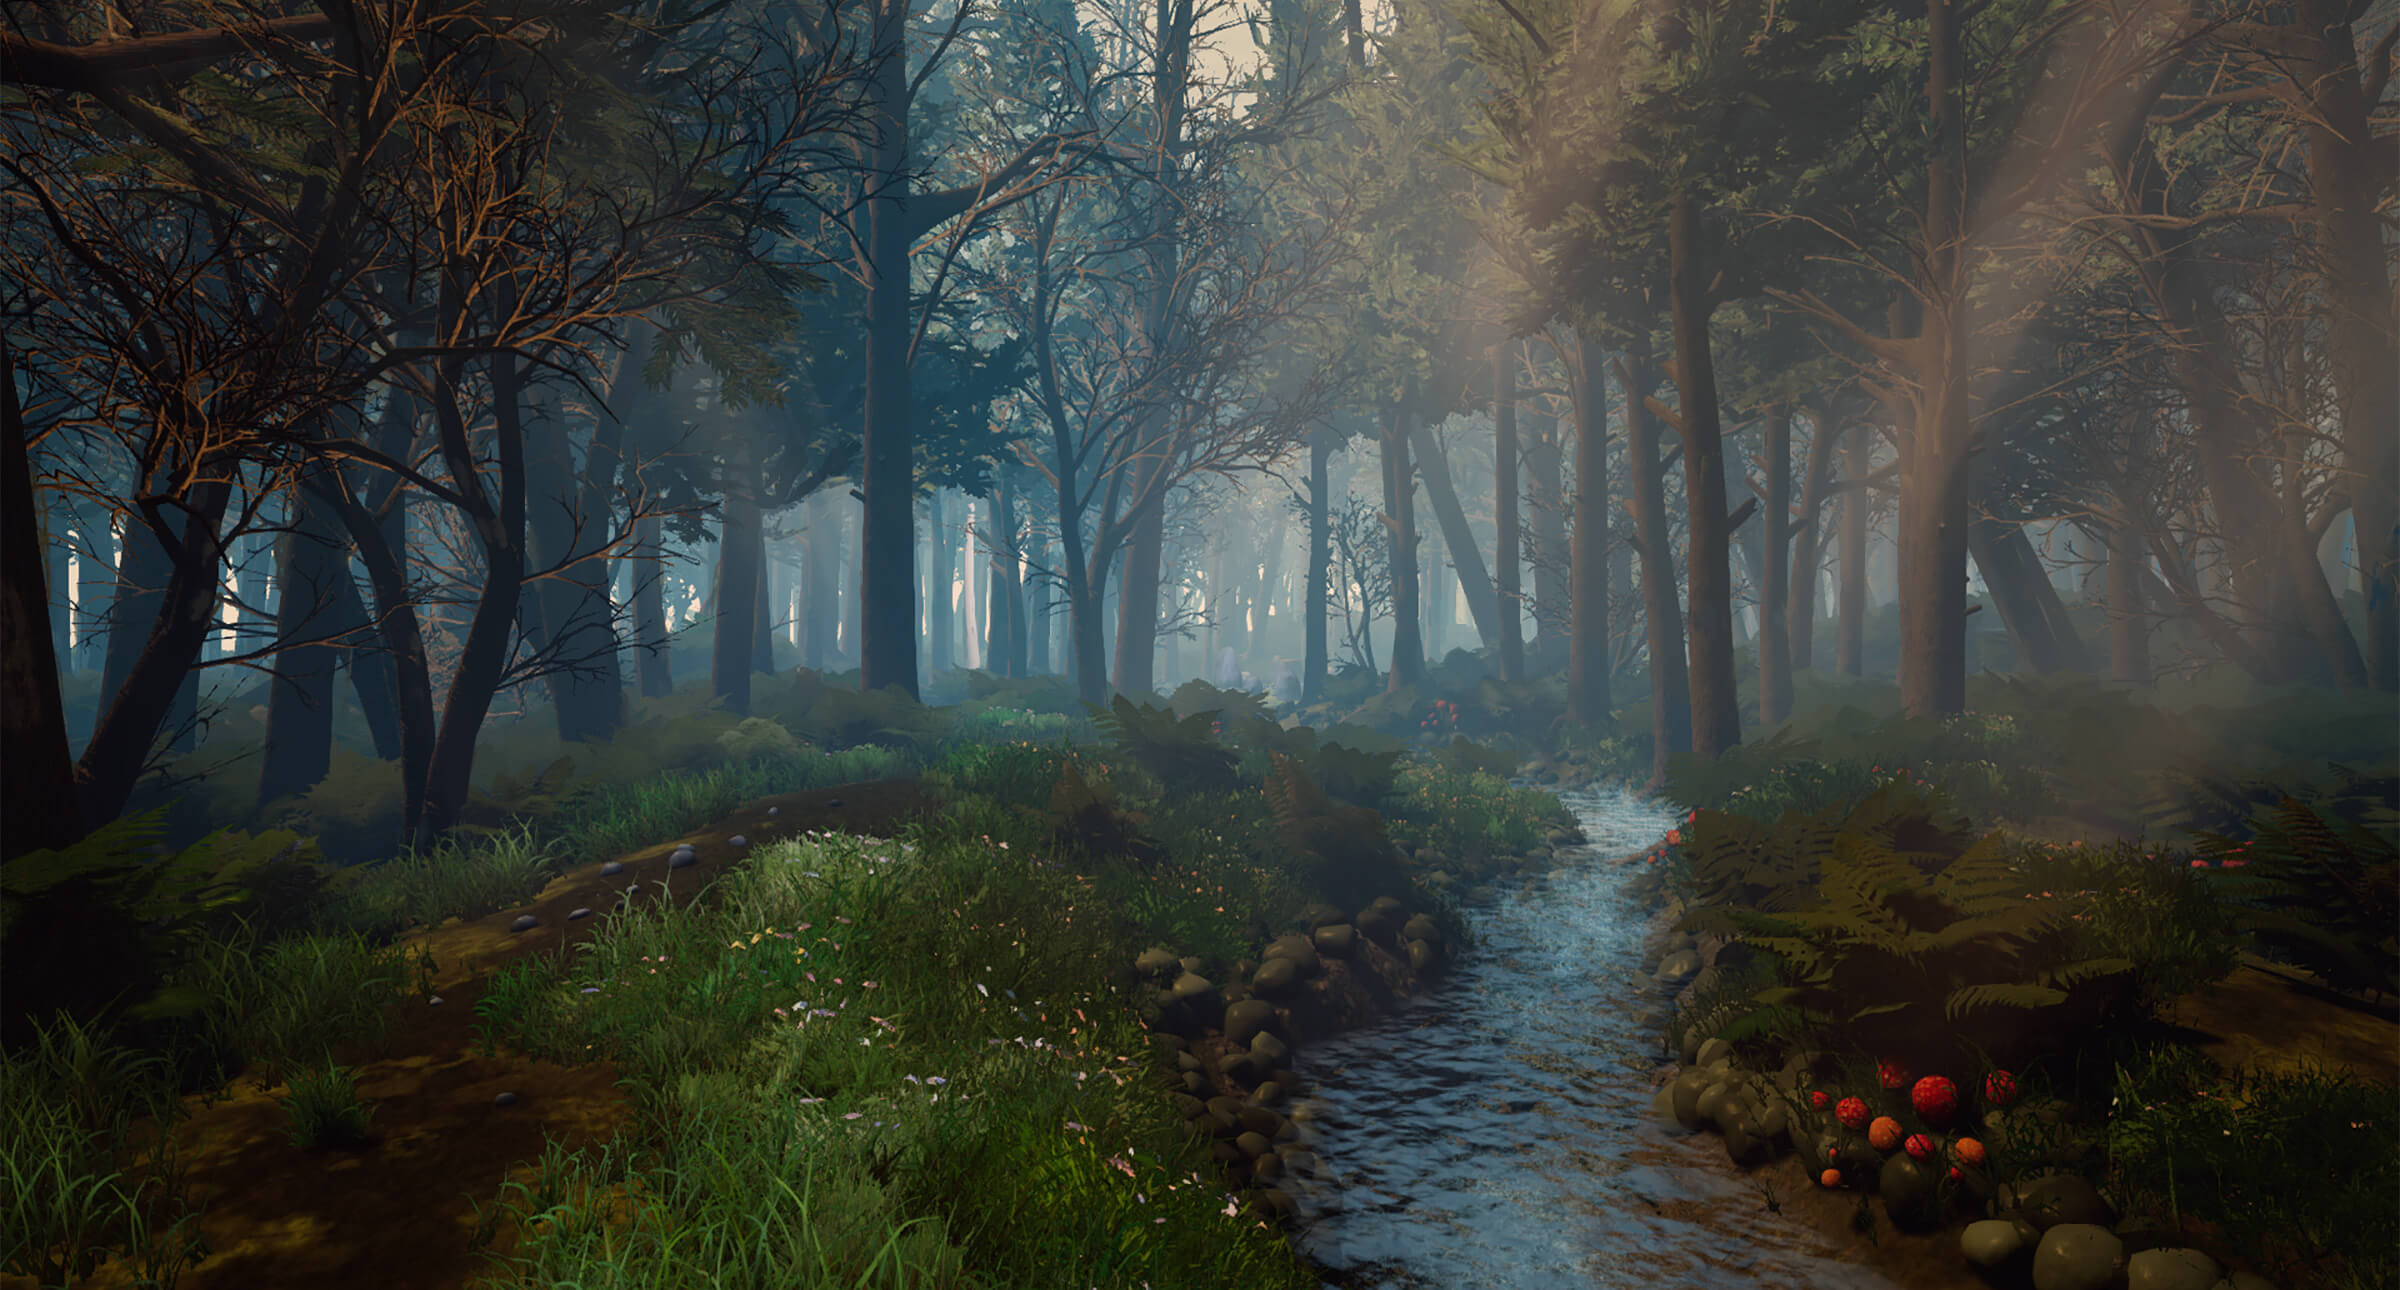 computer-generated forest 3D environment with a stream and sun rays piercing the tree canopy